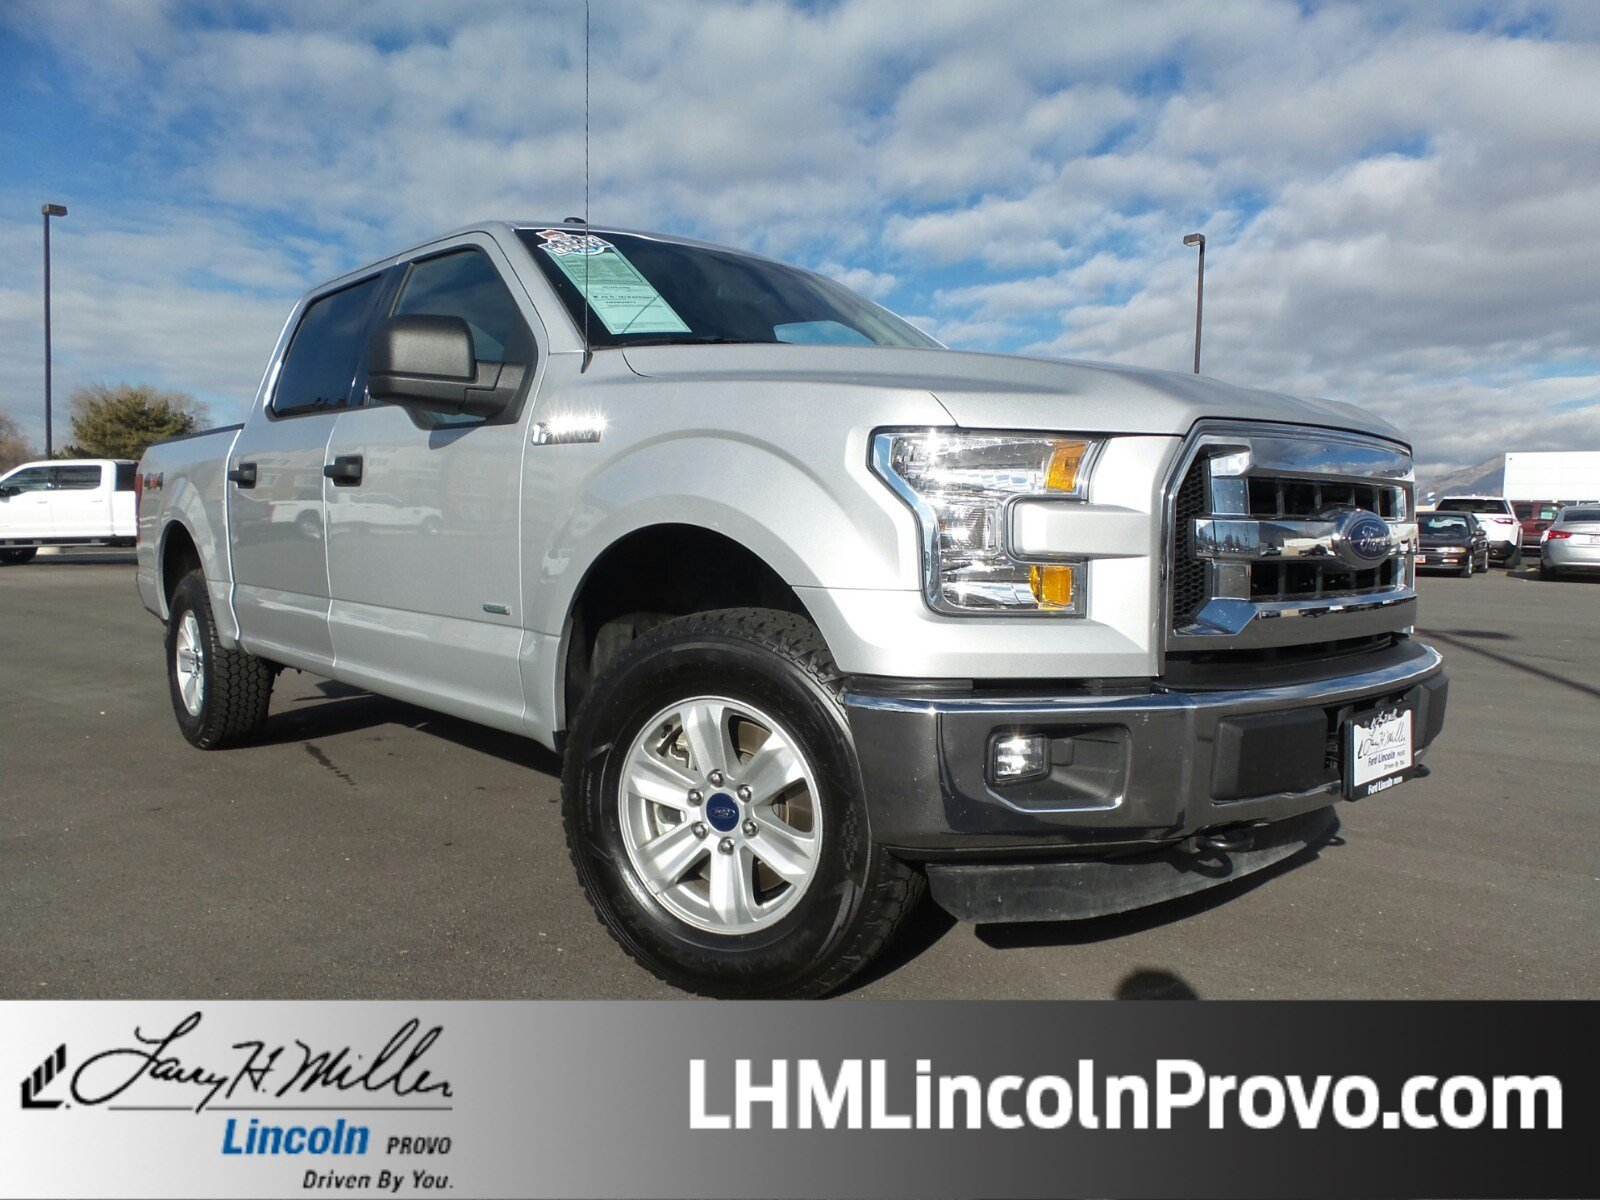 Larry H Miller Ford Lincoln Provo New Vehicles For Sale